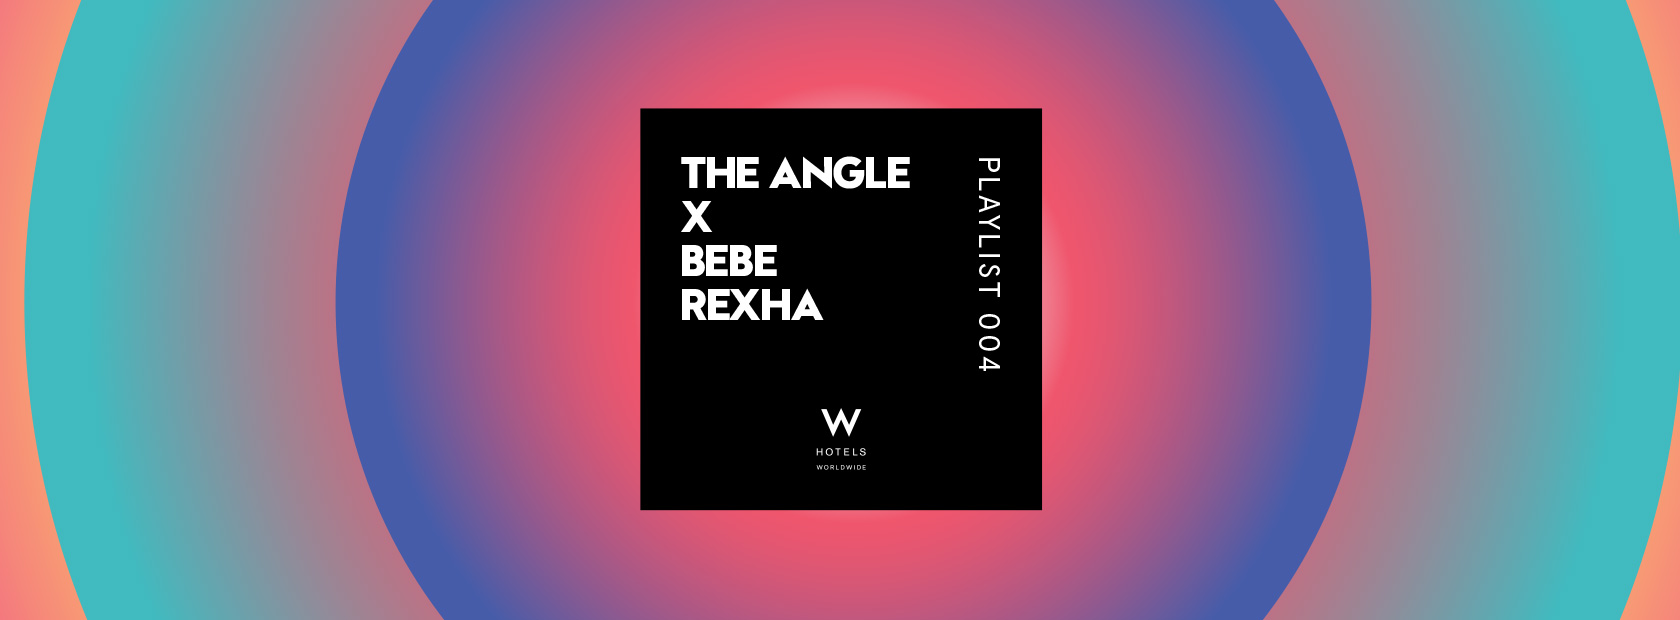 Music - W Hotels / The Angle - Life with a W Slant